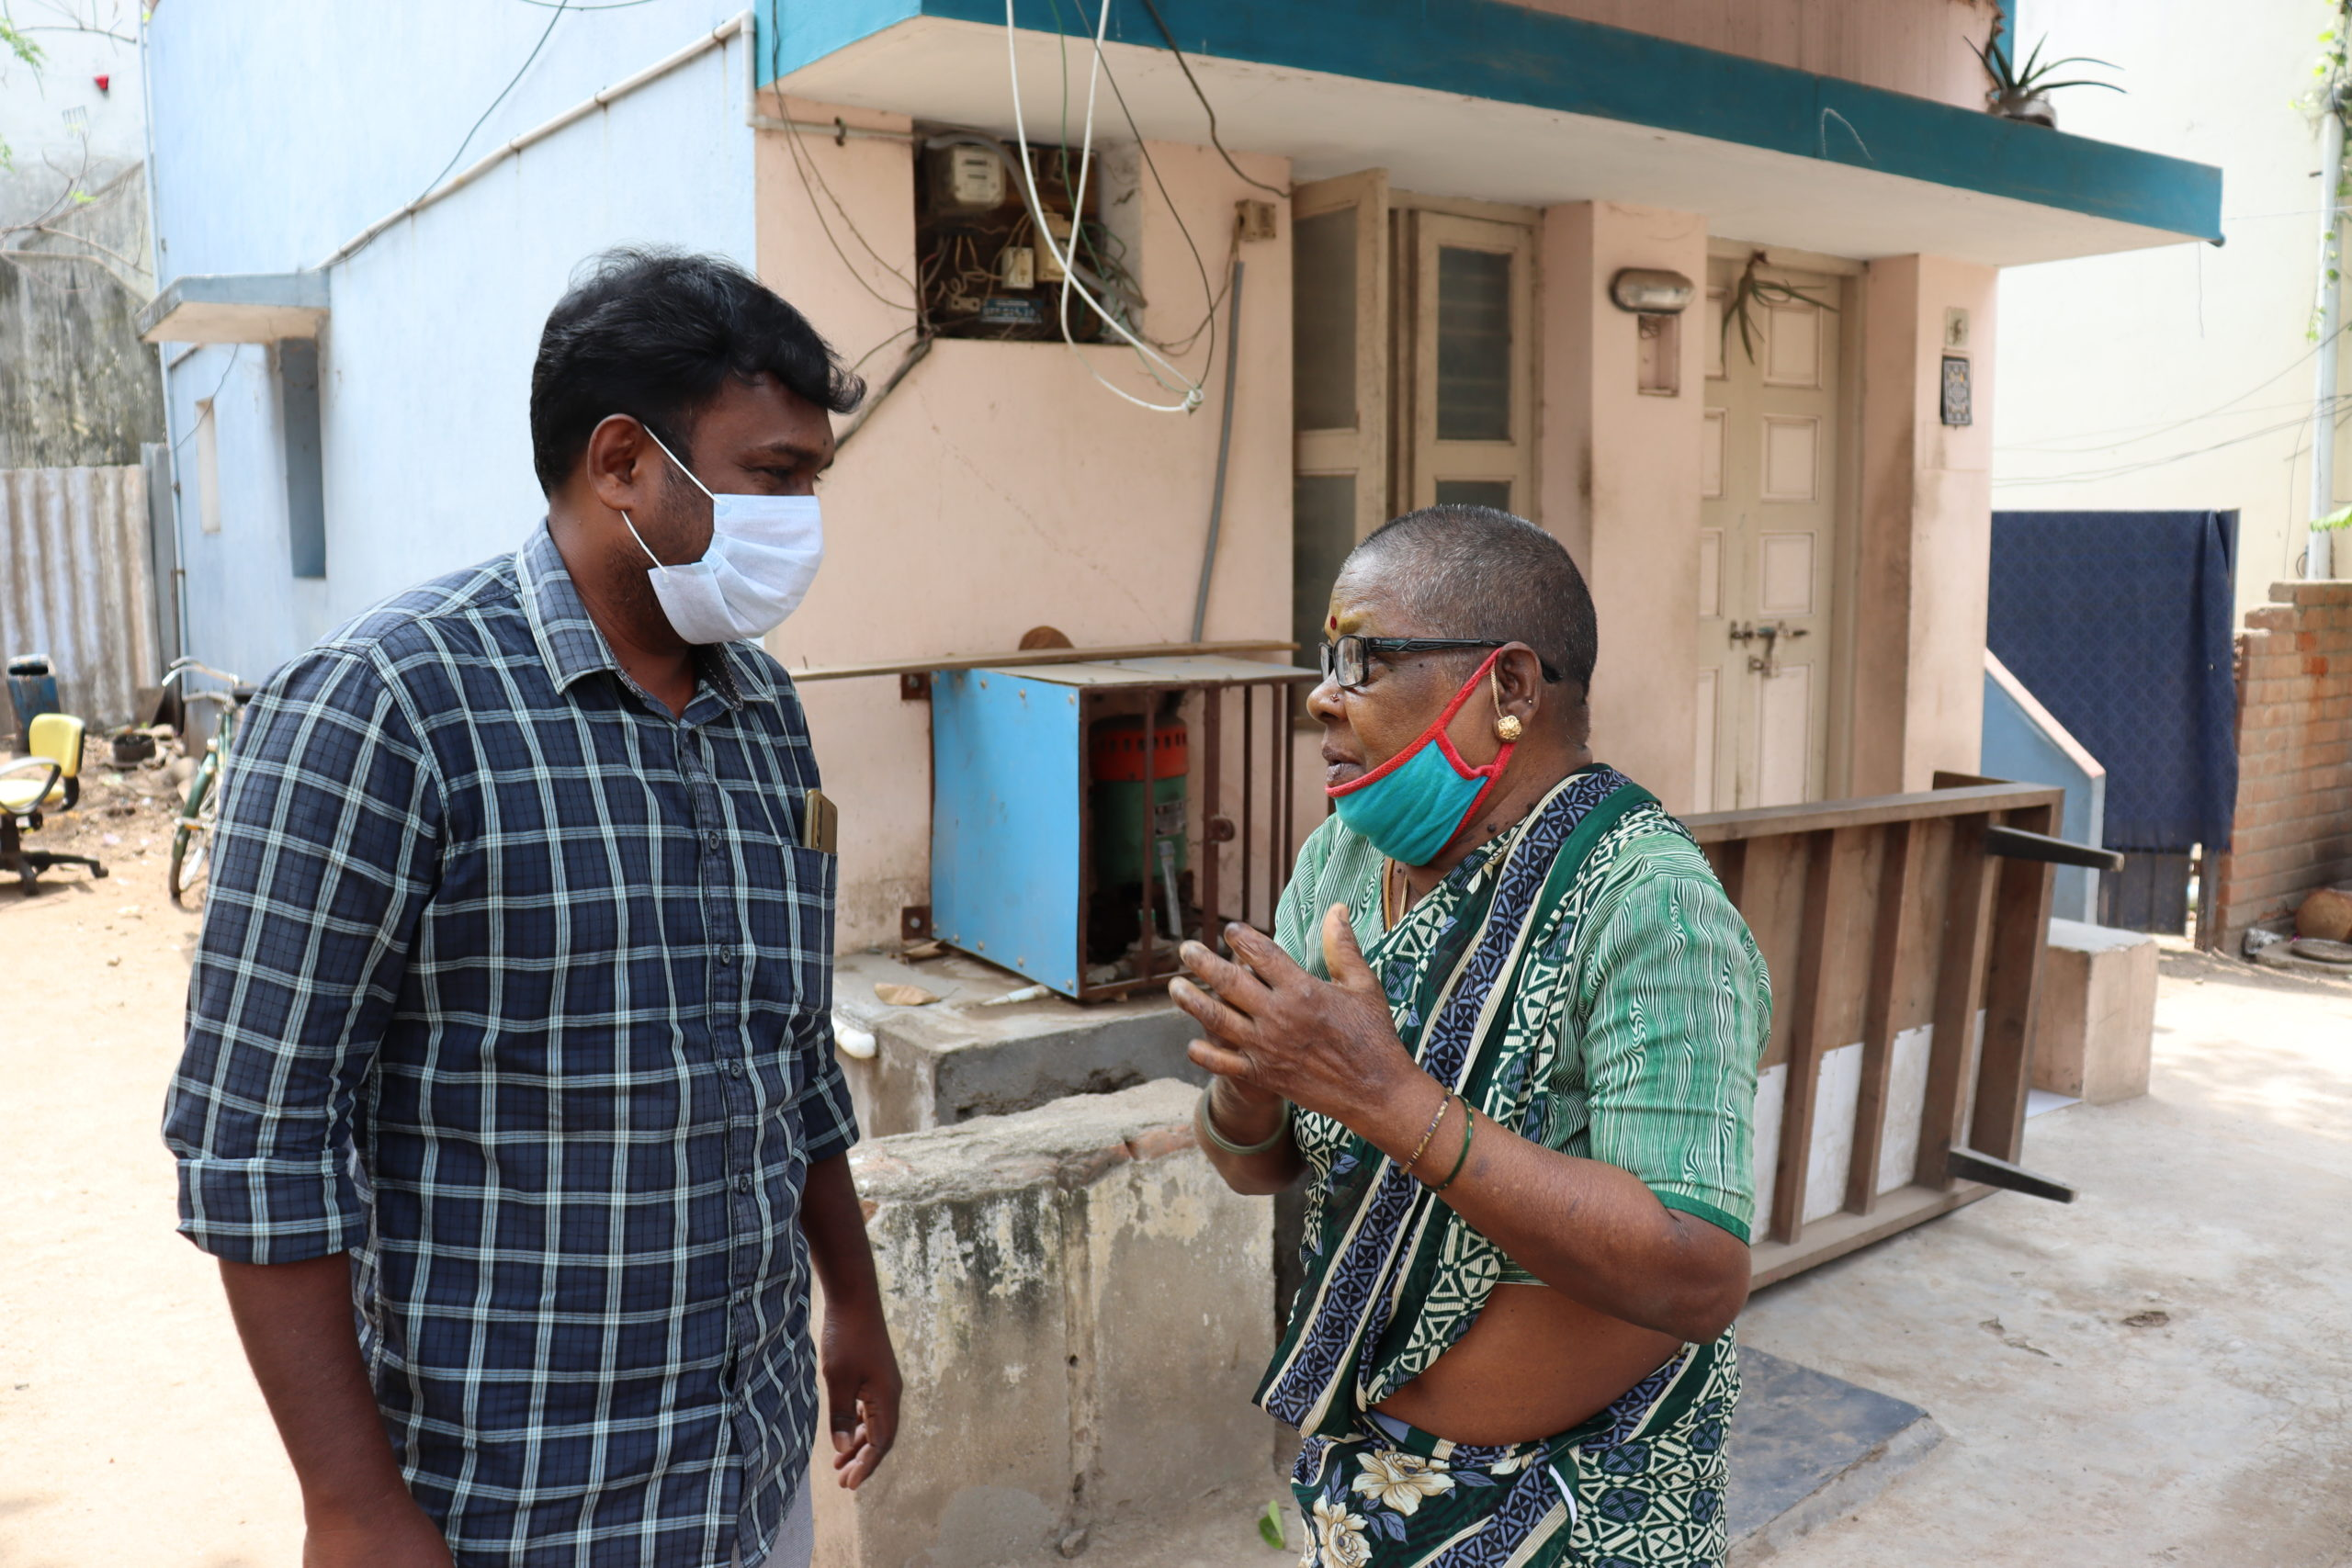 Afraid to go near leprosy patients, now he's a compassionate friend